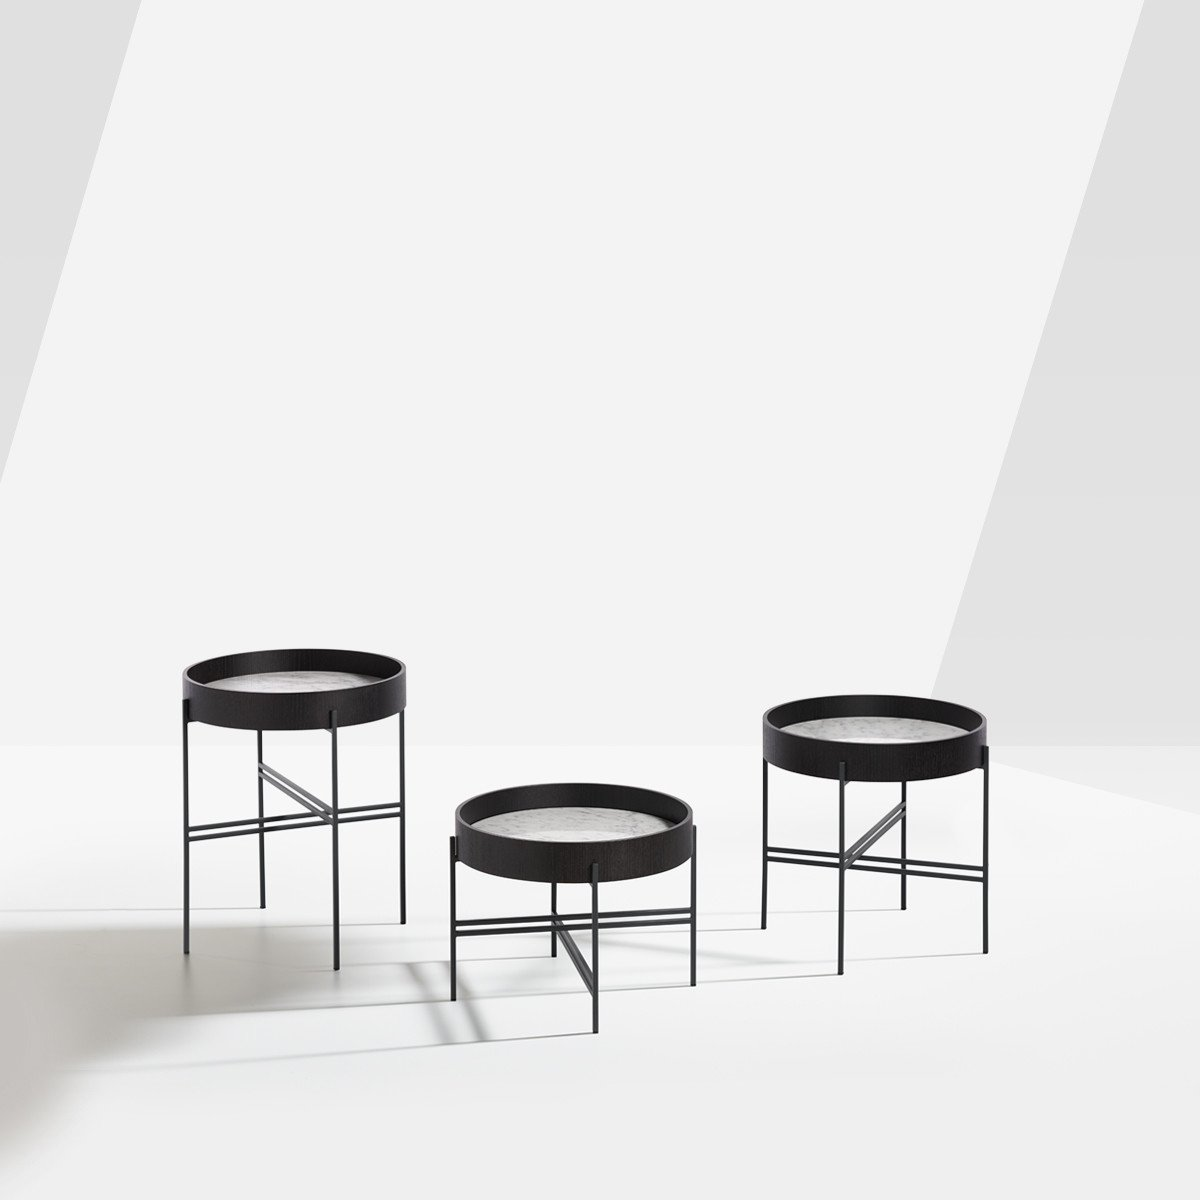 Tray Coffee Table from Potocco, designed by Marco Viola Studio